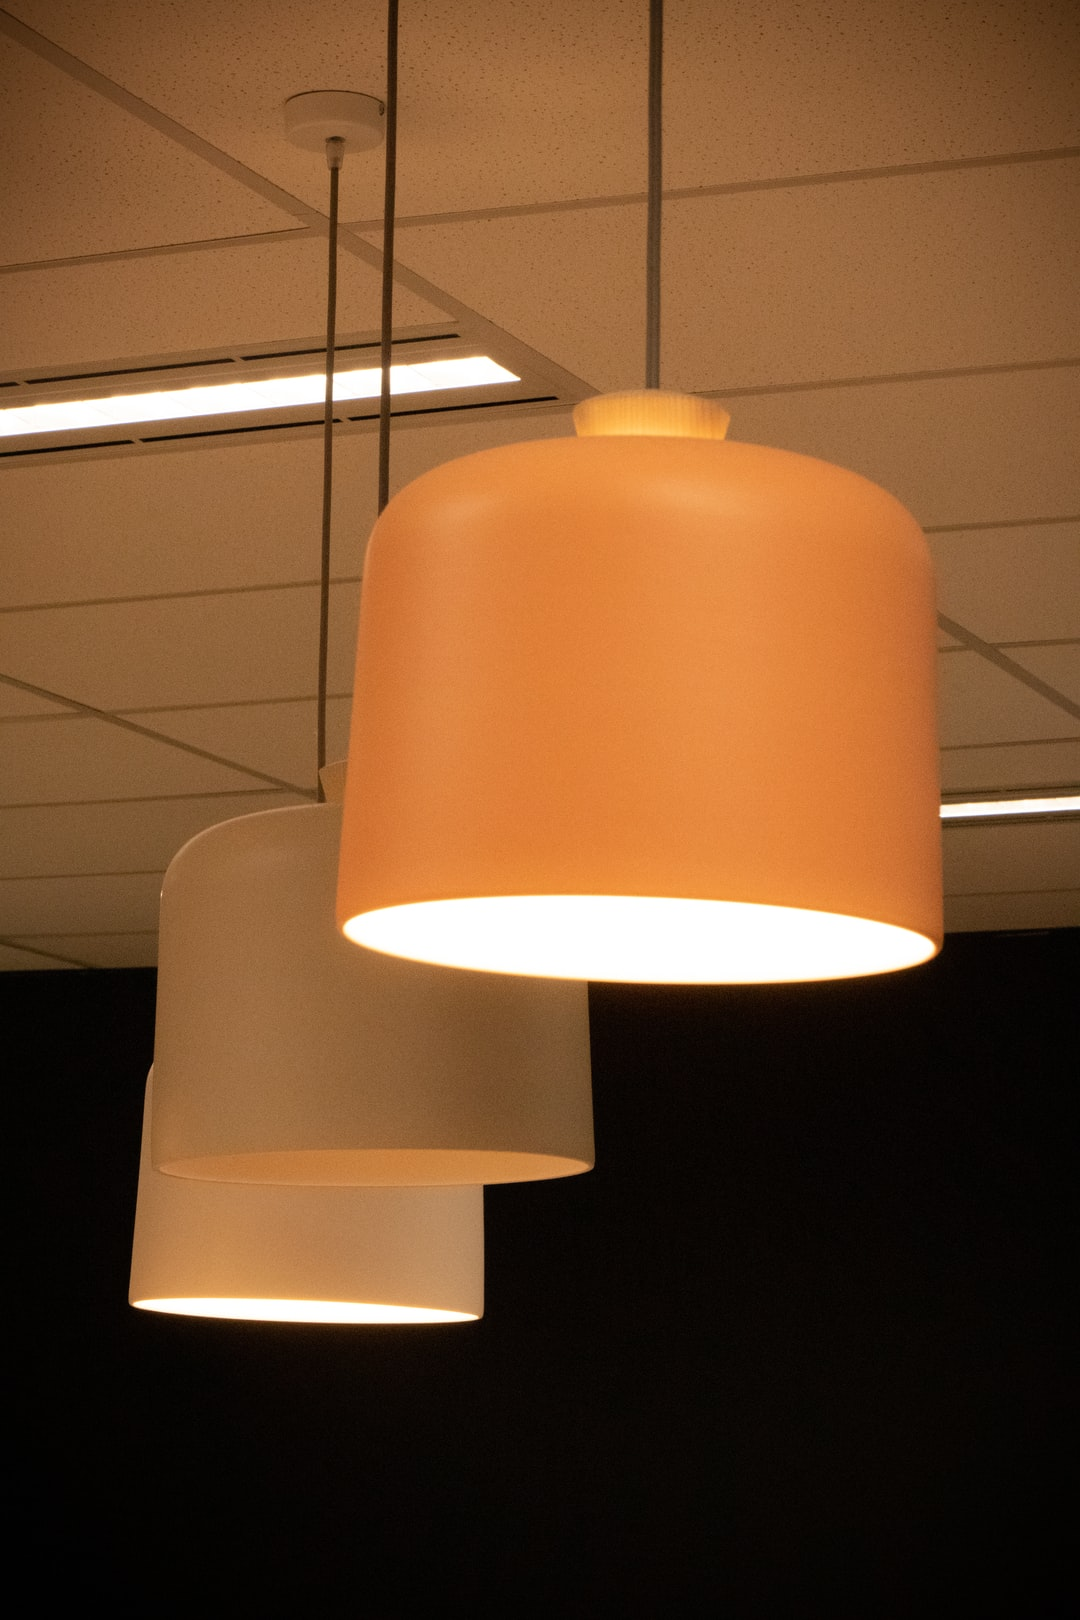 Light in the office kitchen